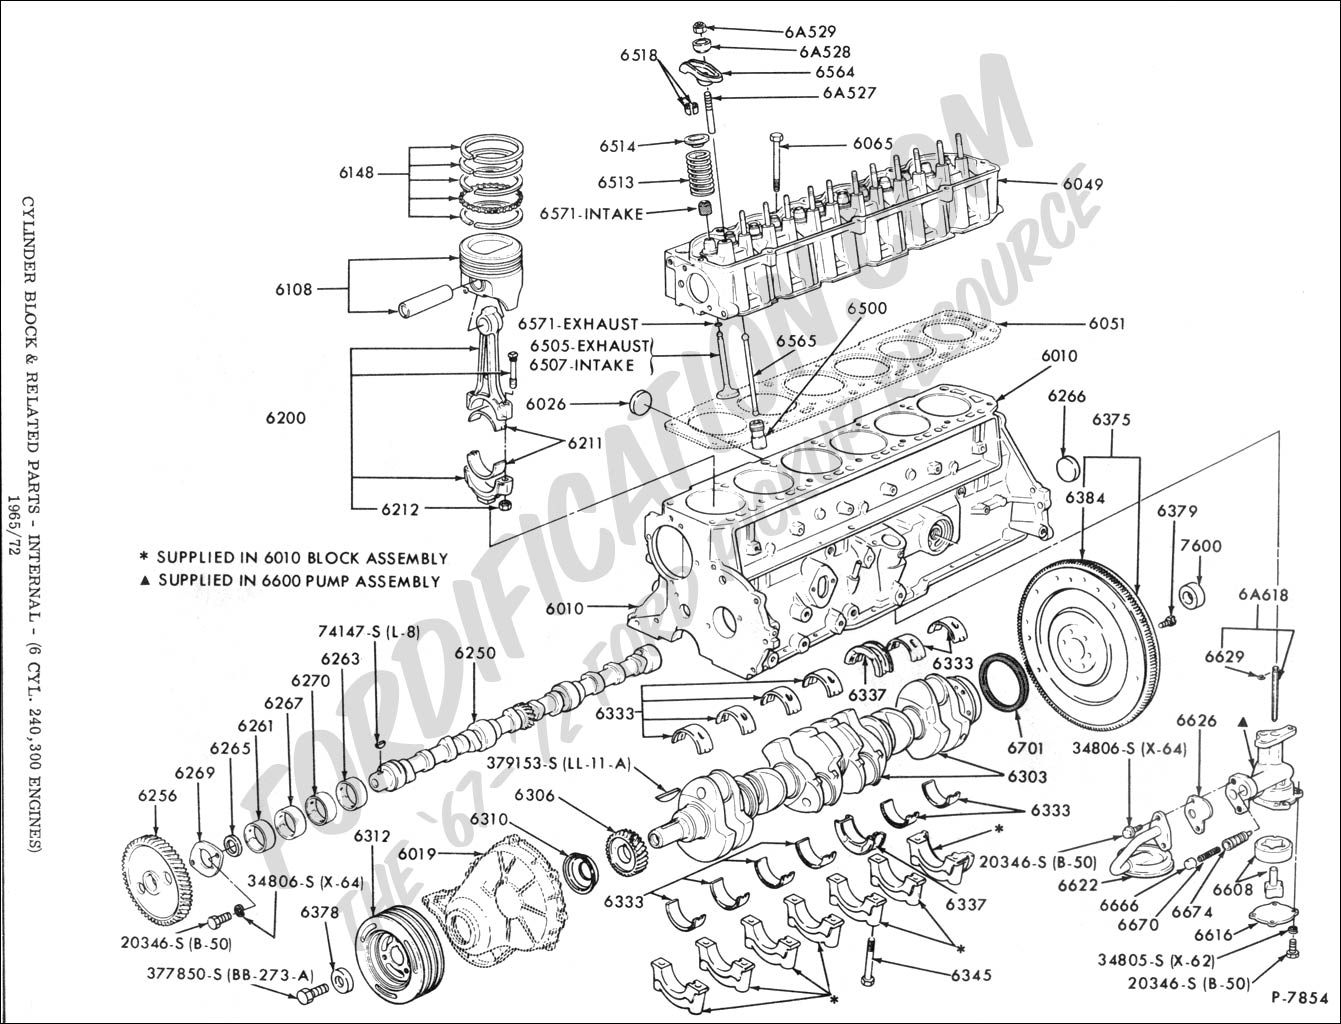 Ford truck technical drawings and schematics section e engine and related ponents